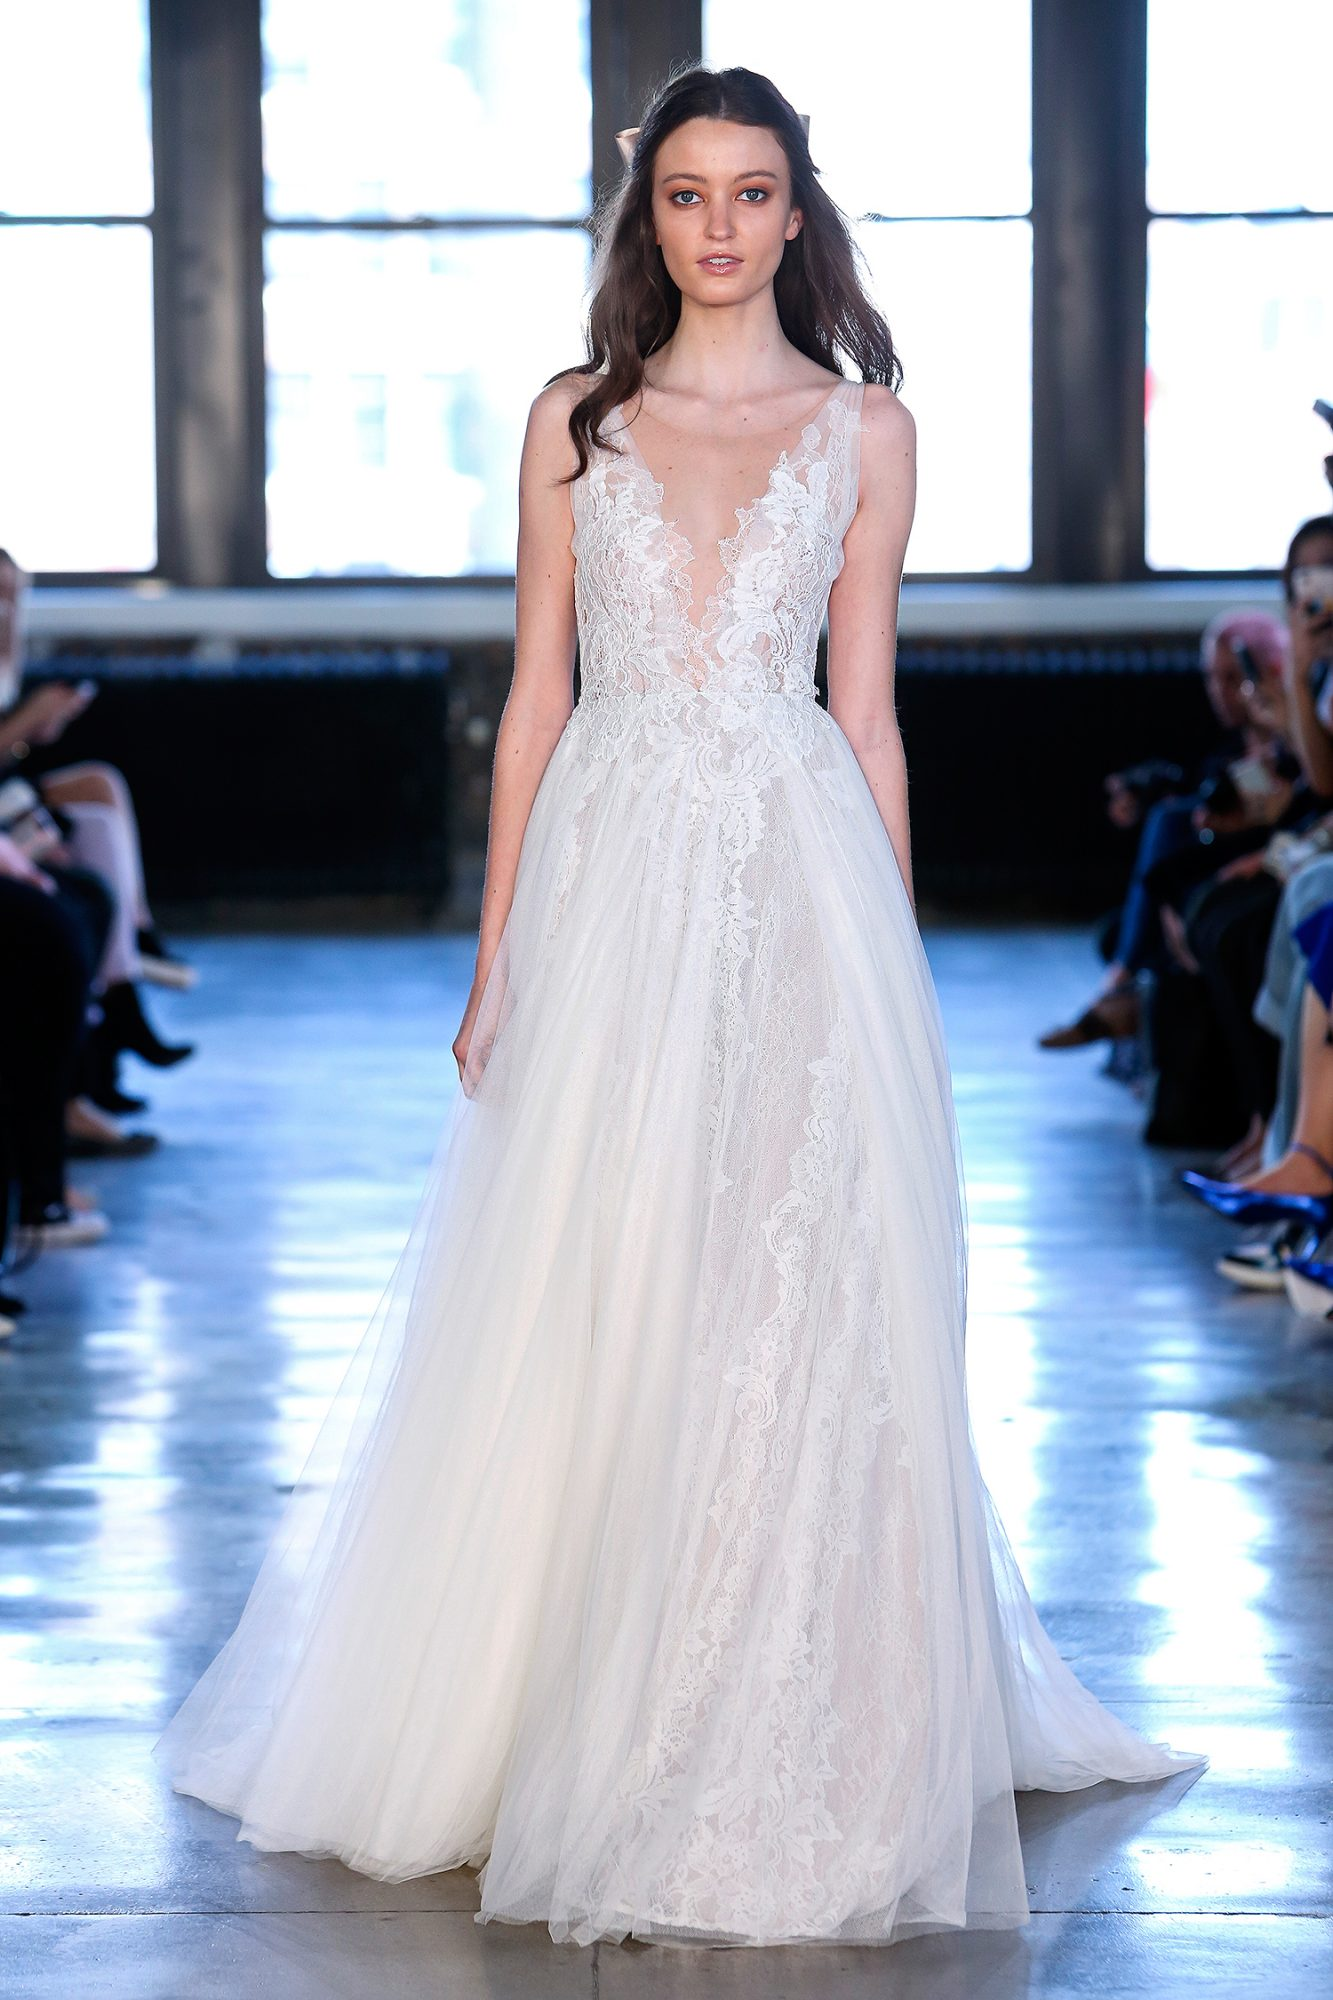 watters wedding dress spring 2019 plunging neck lace a-line